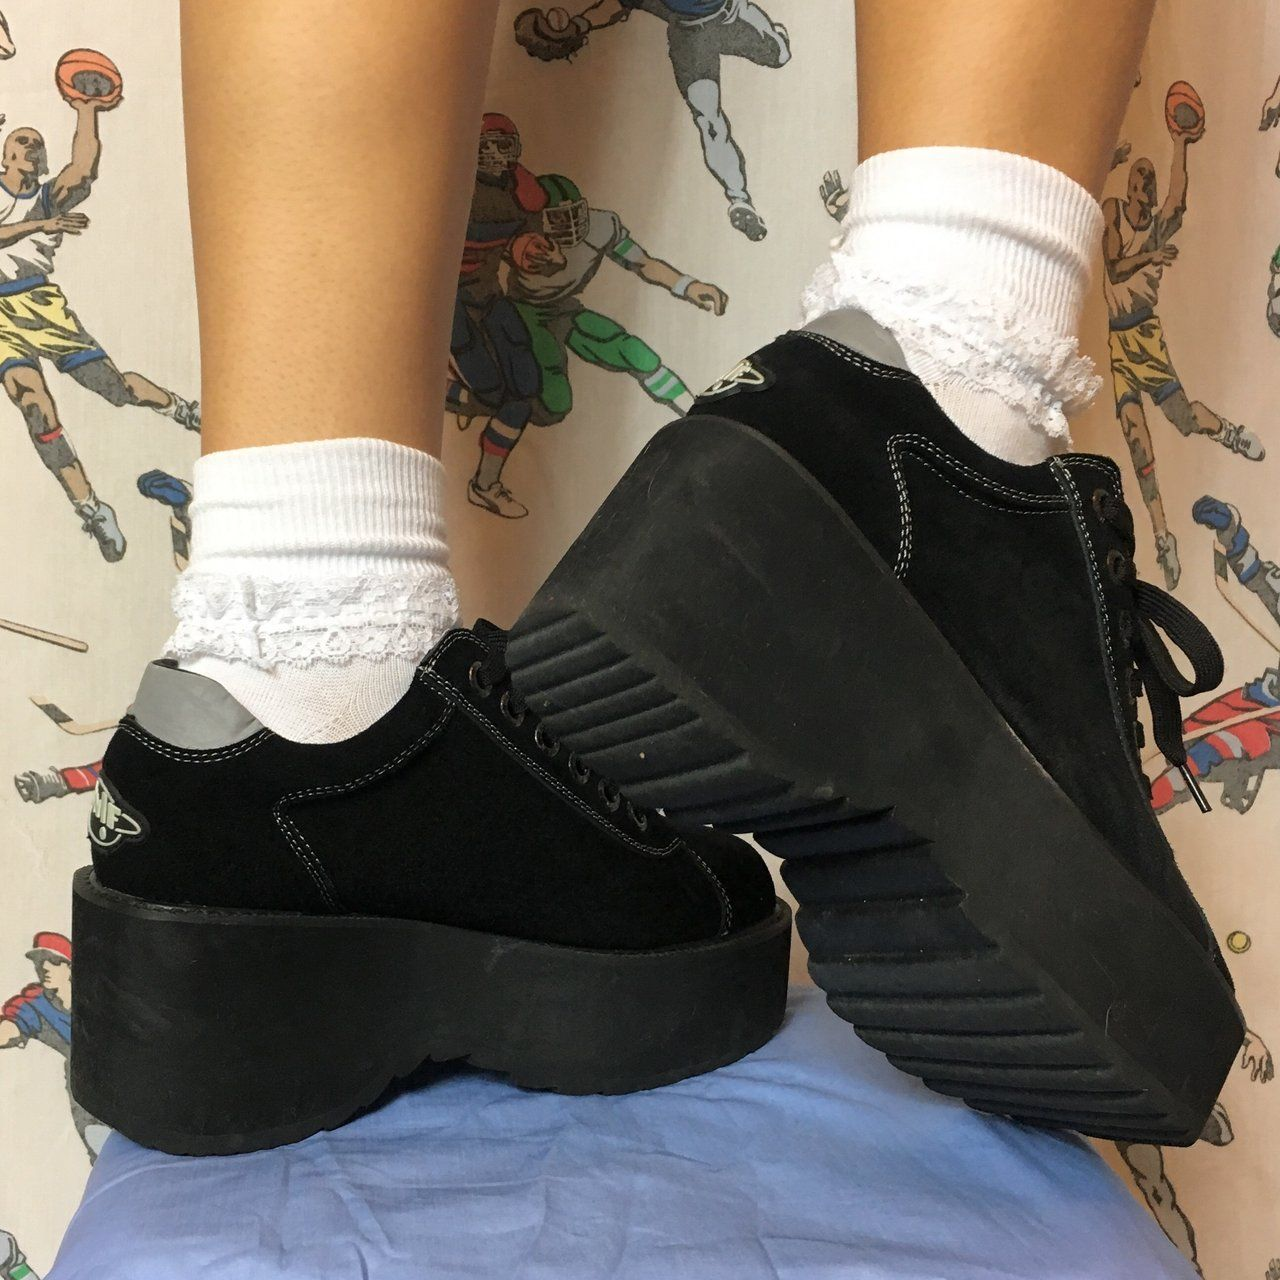 7d64eda7809a ⭐️the planet platform from UNIF🌎〰these are contrast and on - Depop